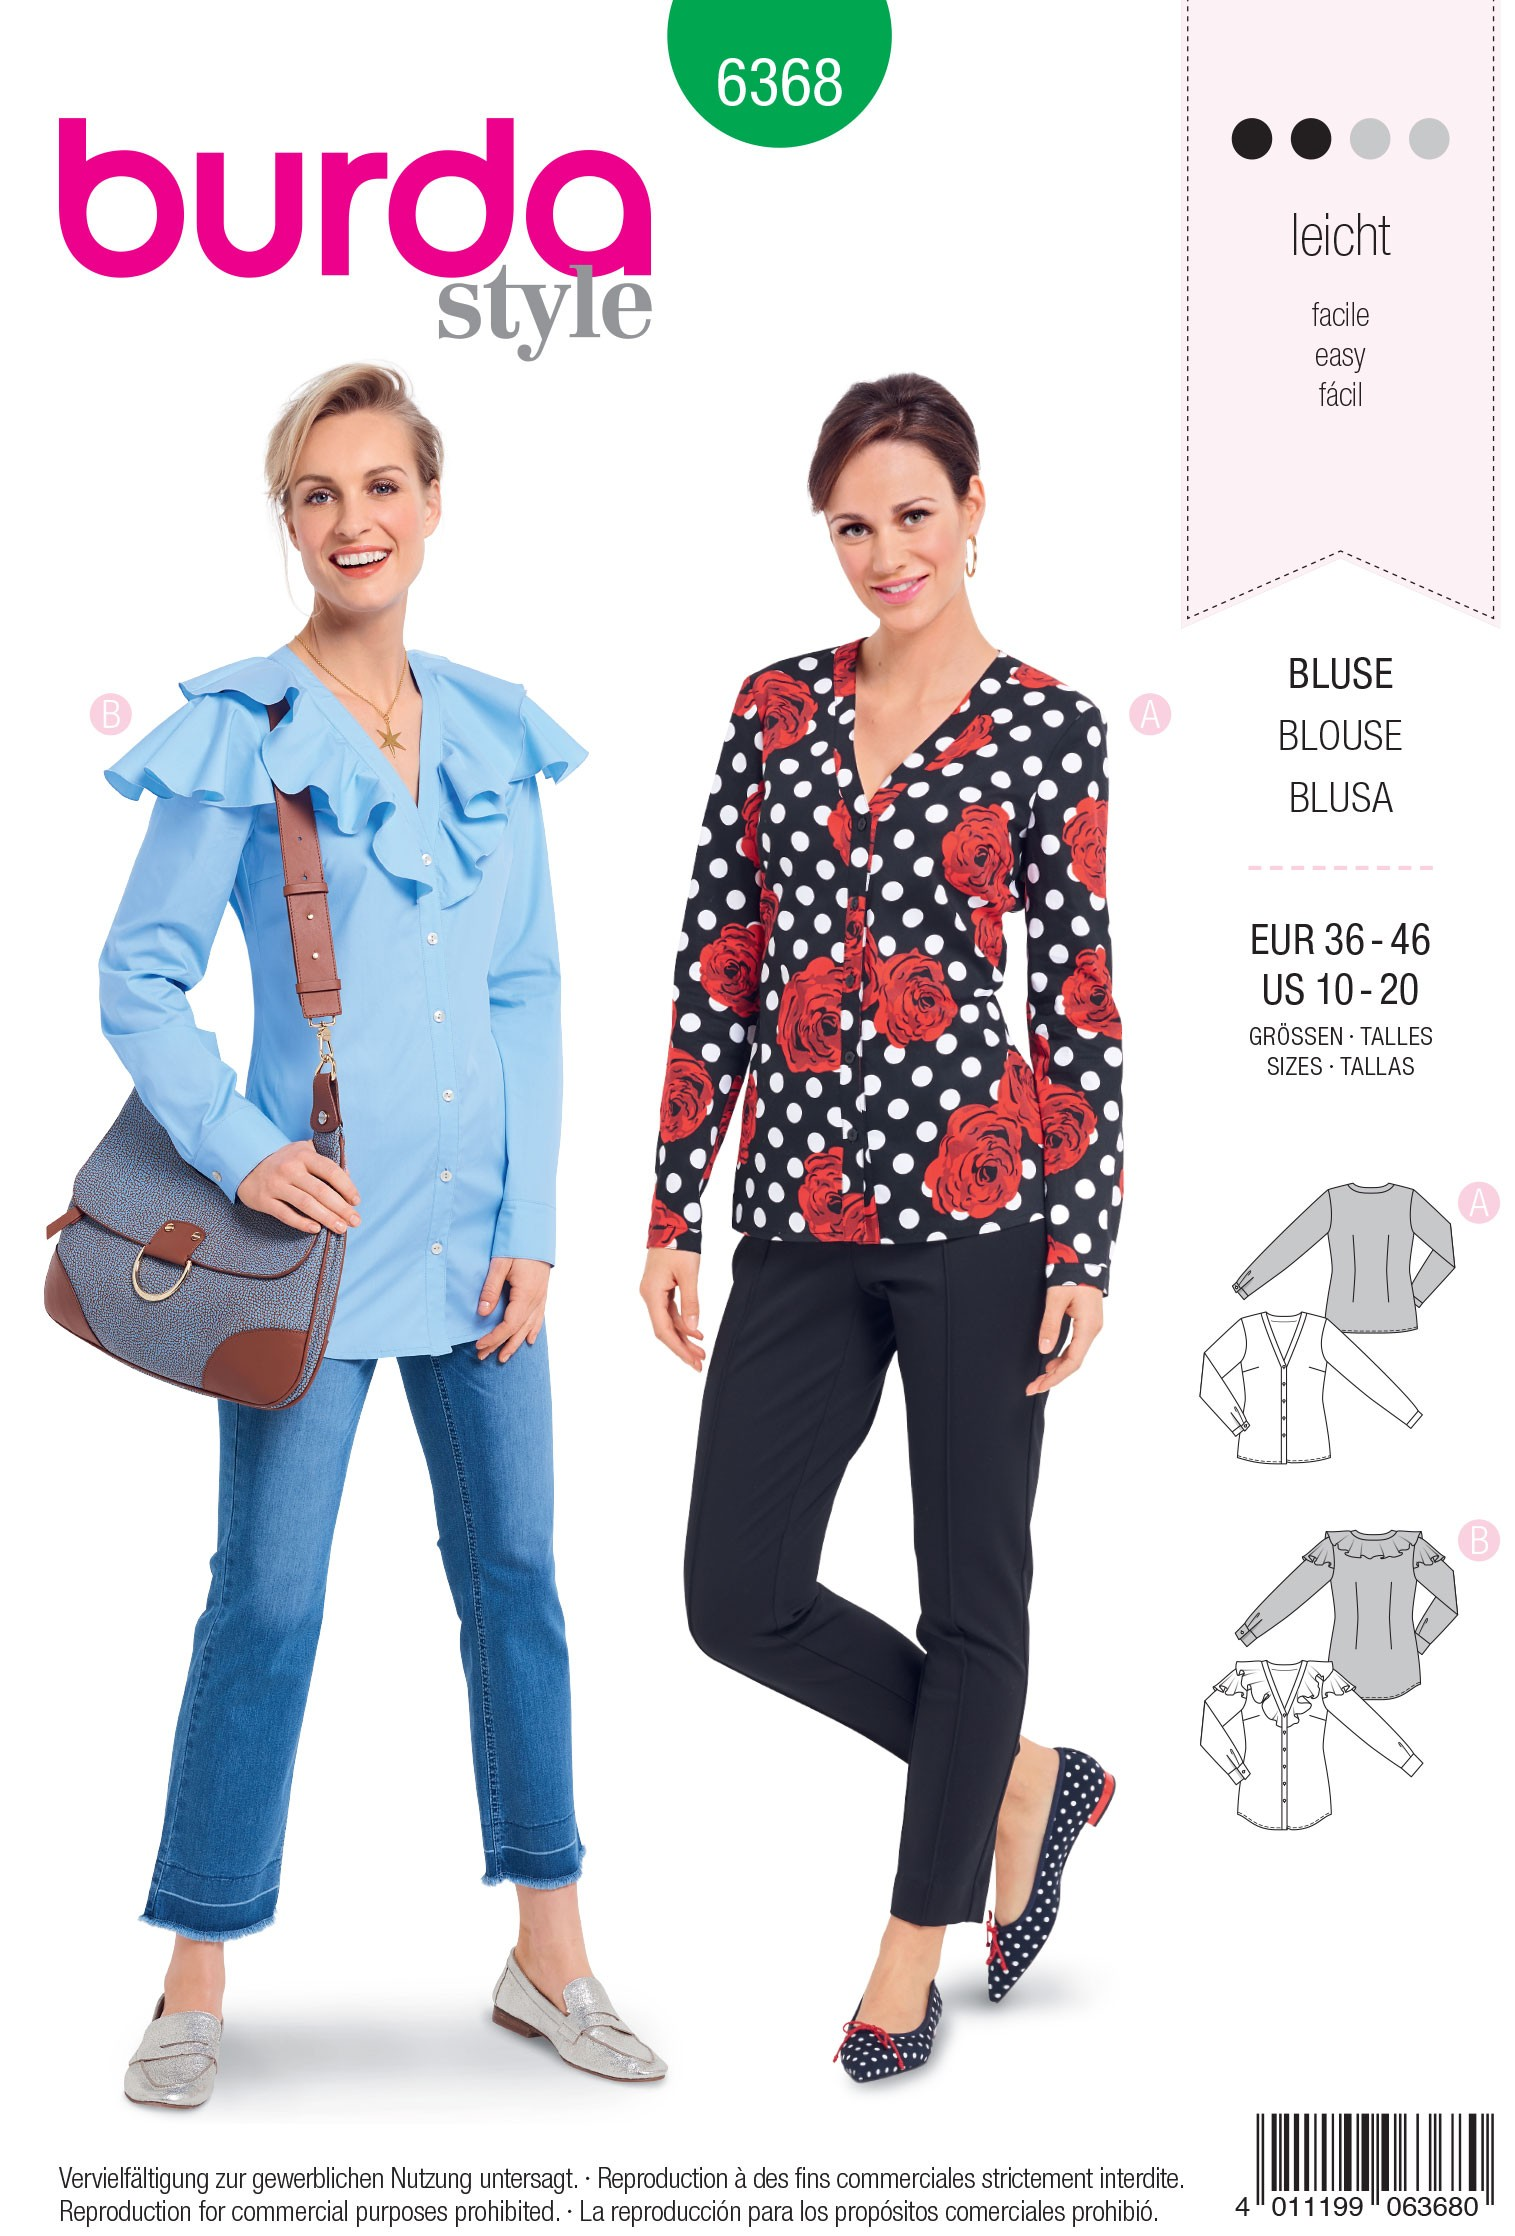 Burda Style Misses' Fashionable Wrap Blouse with Bow Options Sewing Pattern 6368